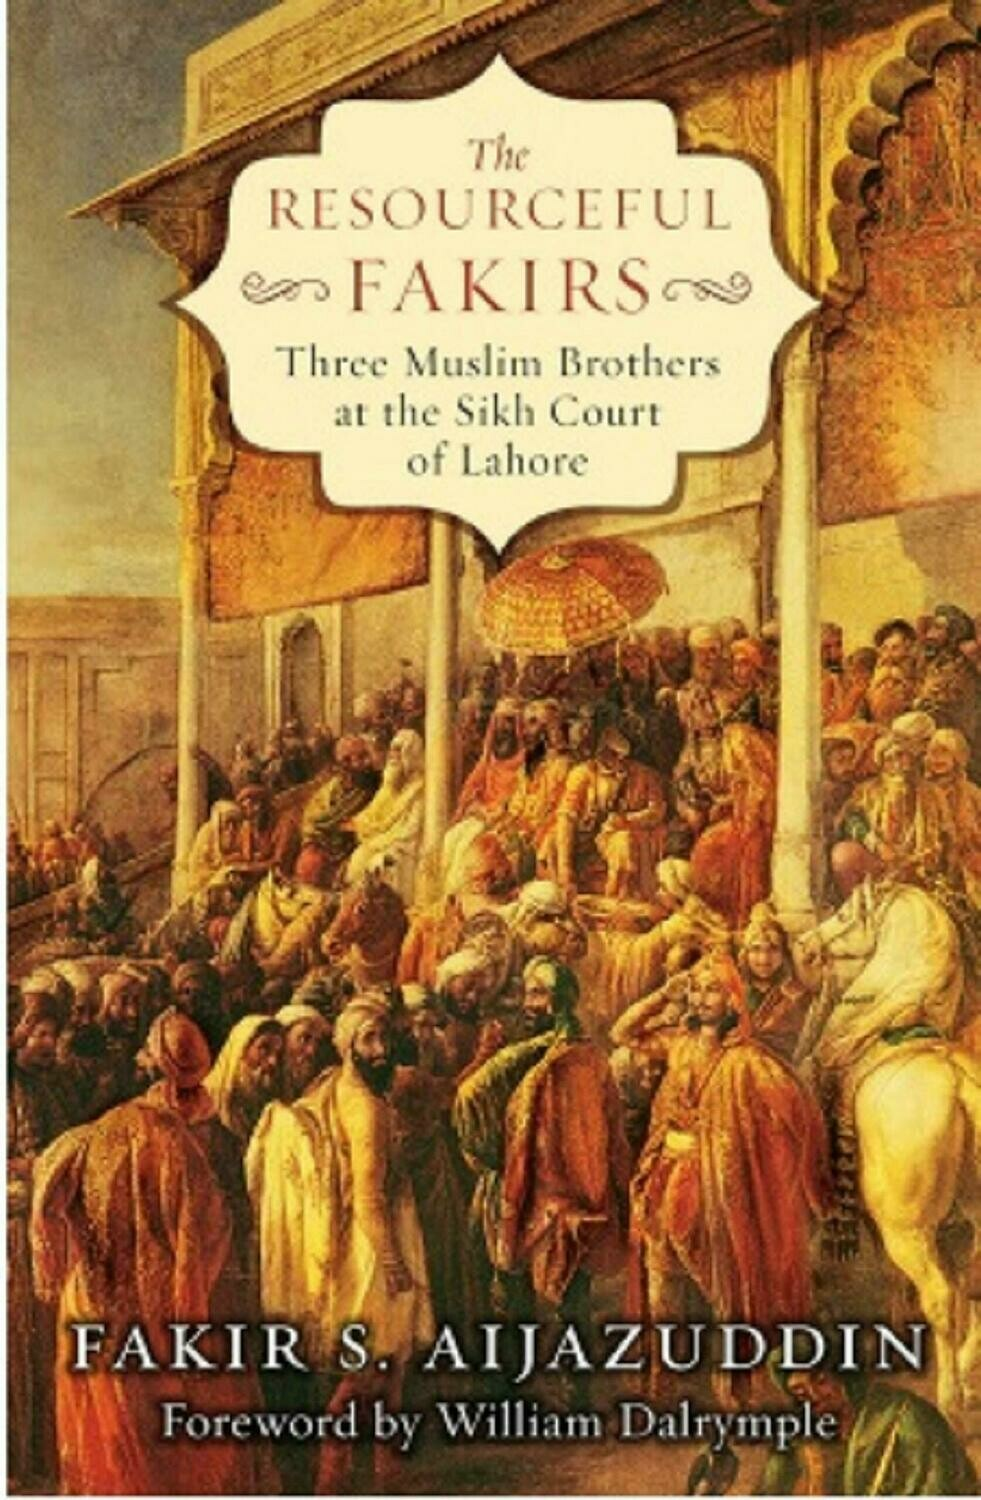 The Resourceful Fakirs: Three Muslim Brothers at the Sikh Court of Lahore